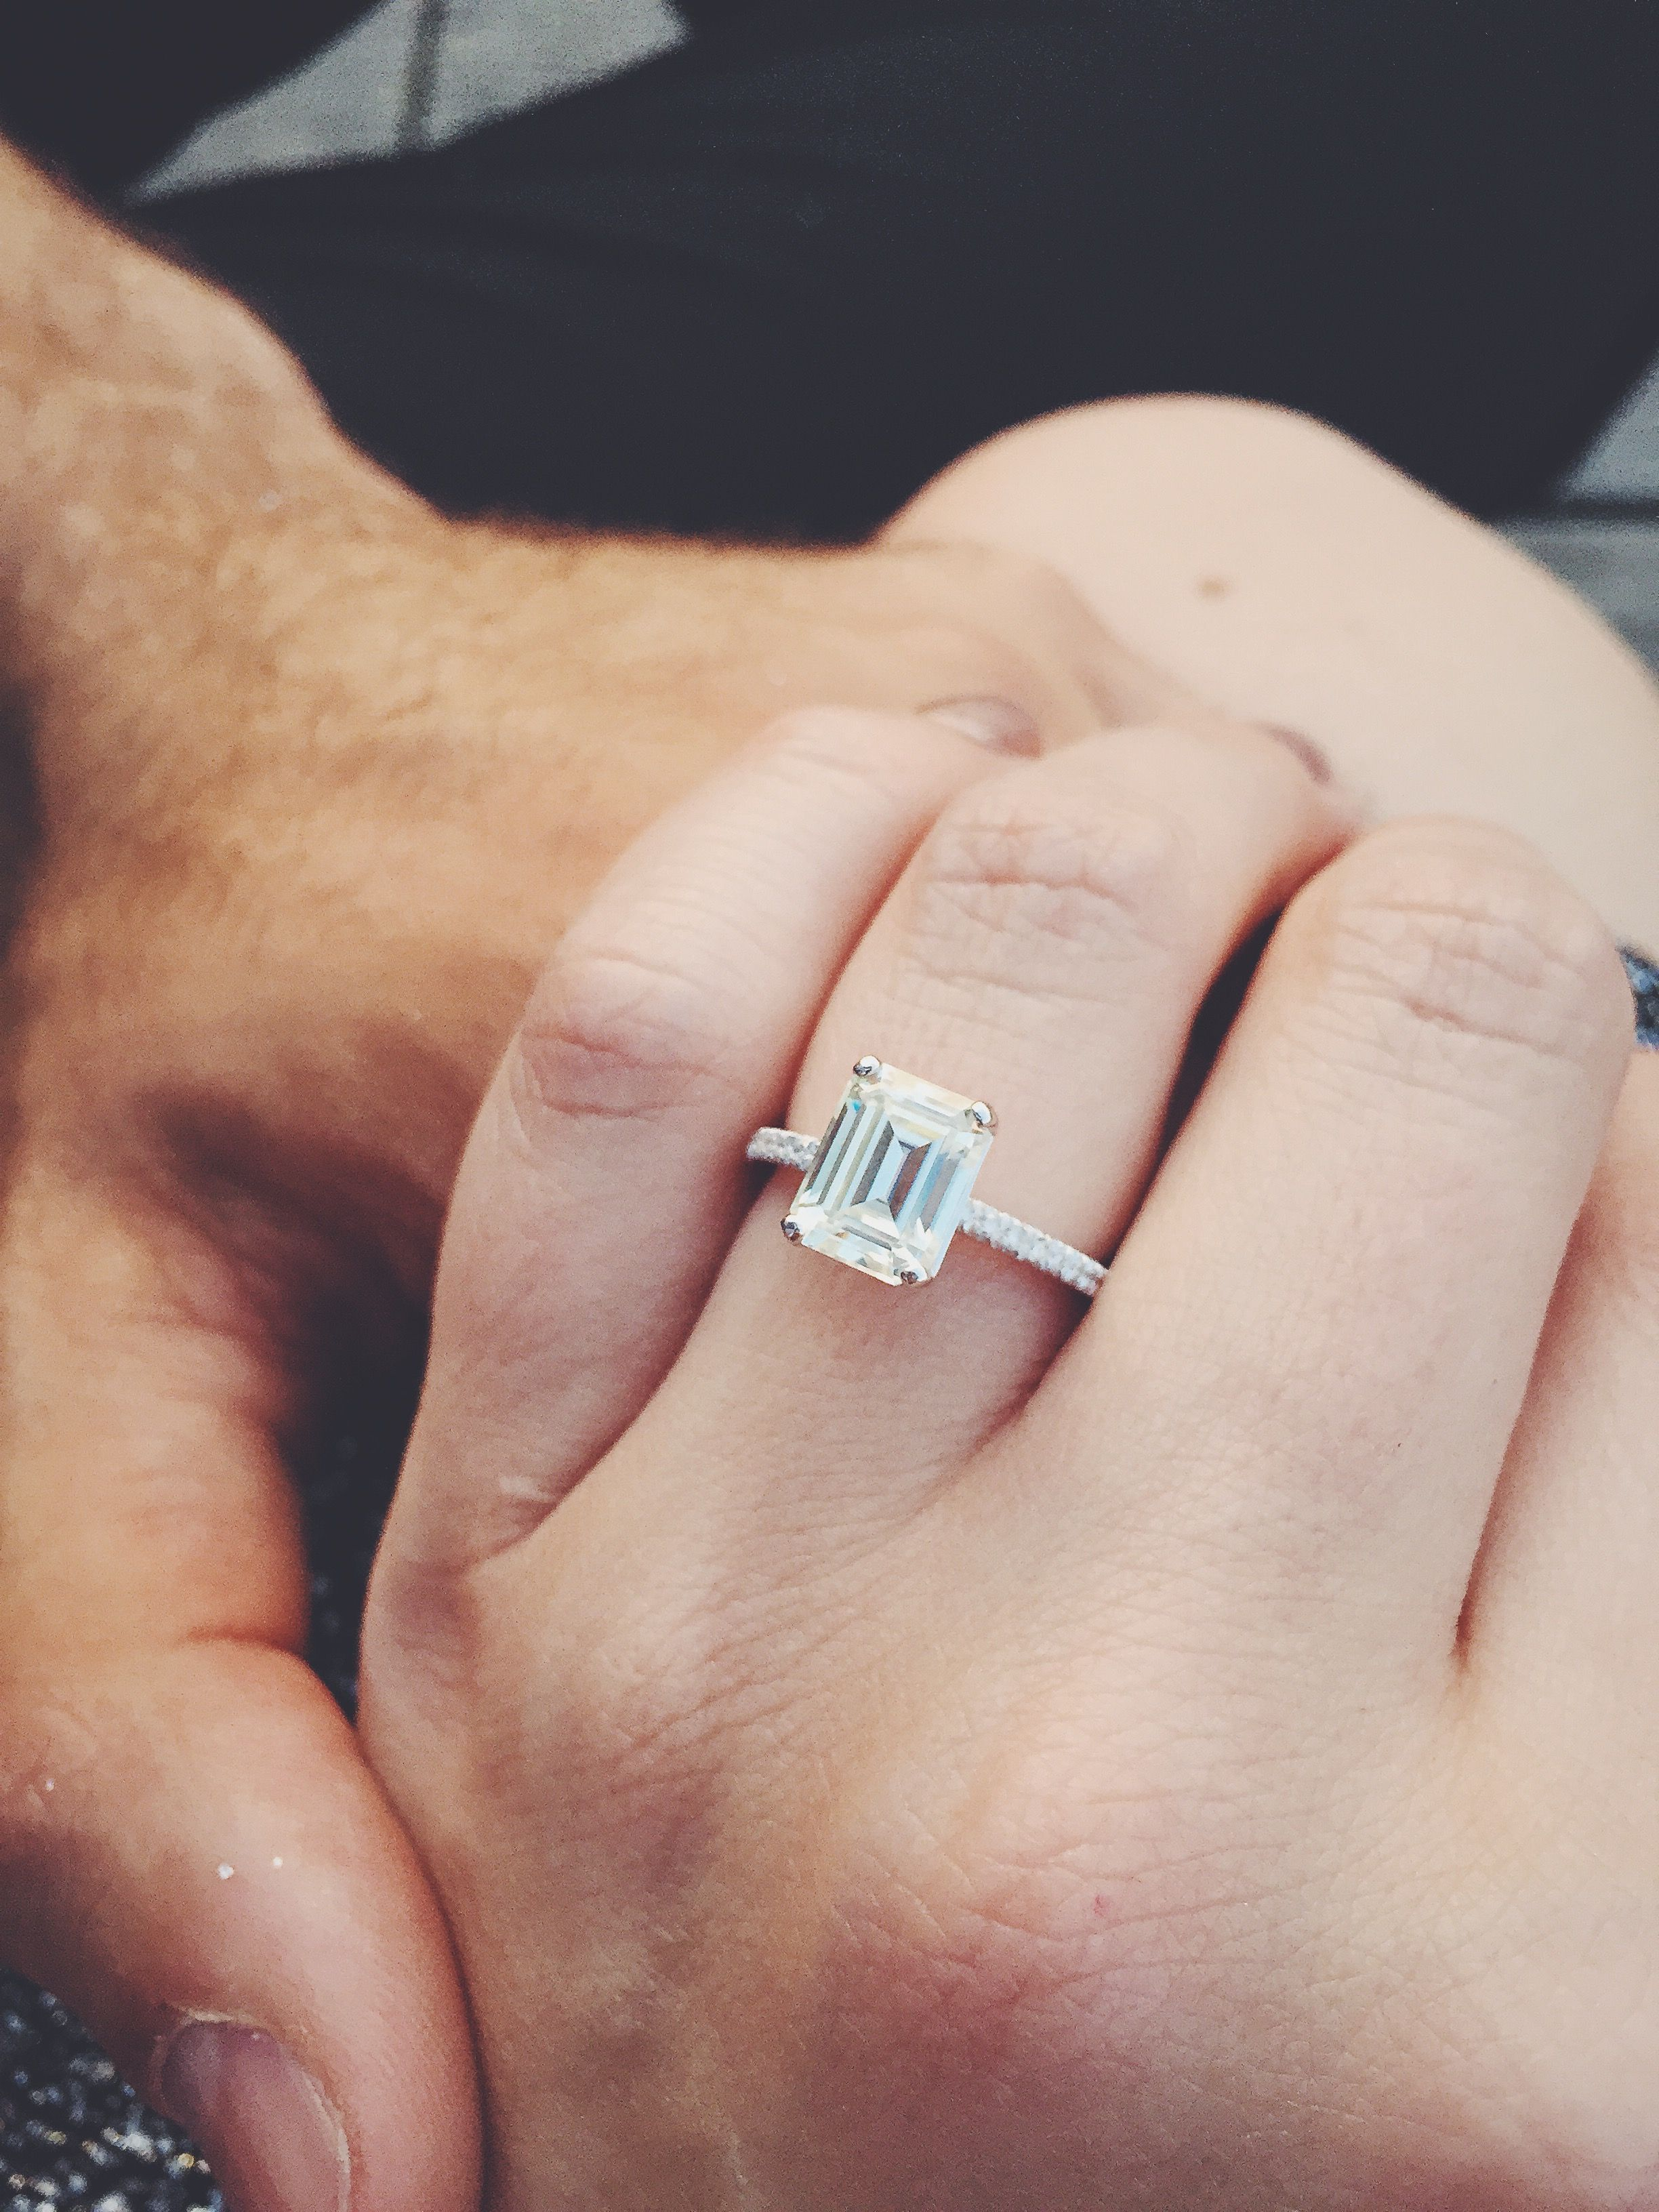 Emerald Cut Moissanite Engagement Ring Pics Weddingbee Page 5